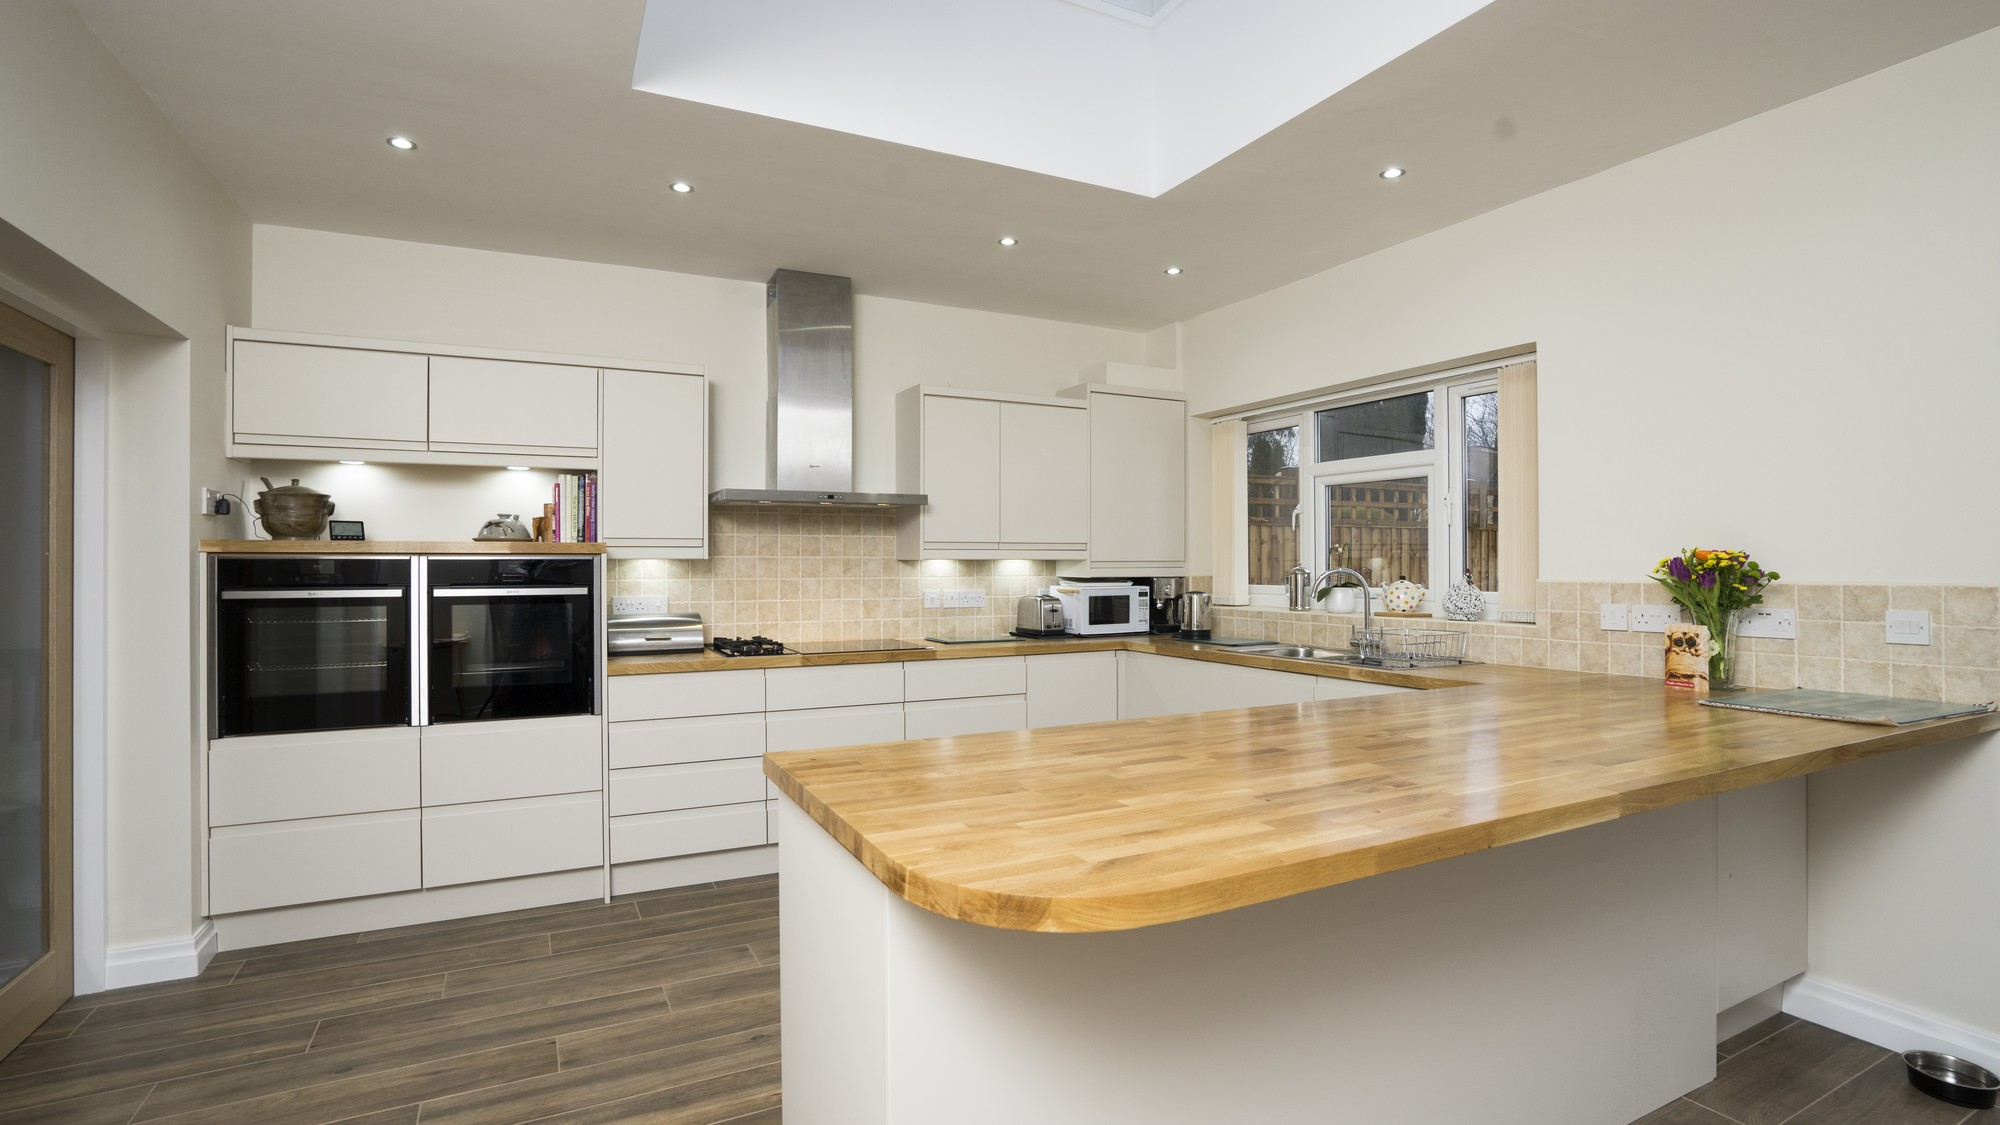 Close up of the large breakfast island with oak worktop and plenty of seating space.